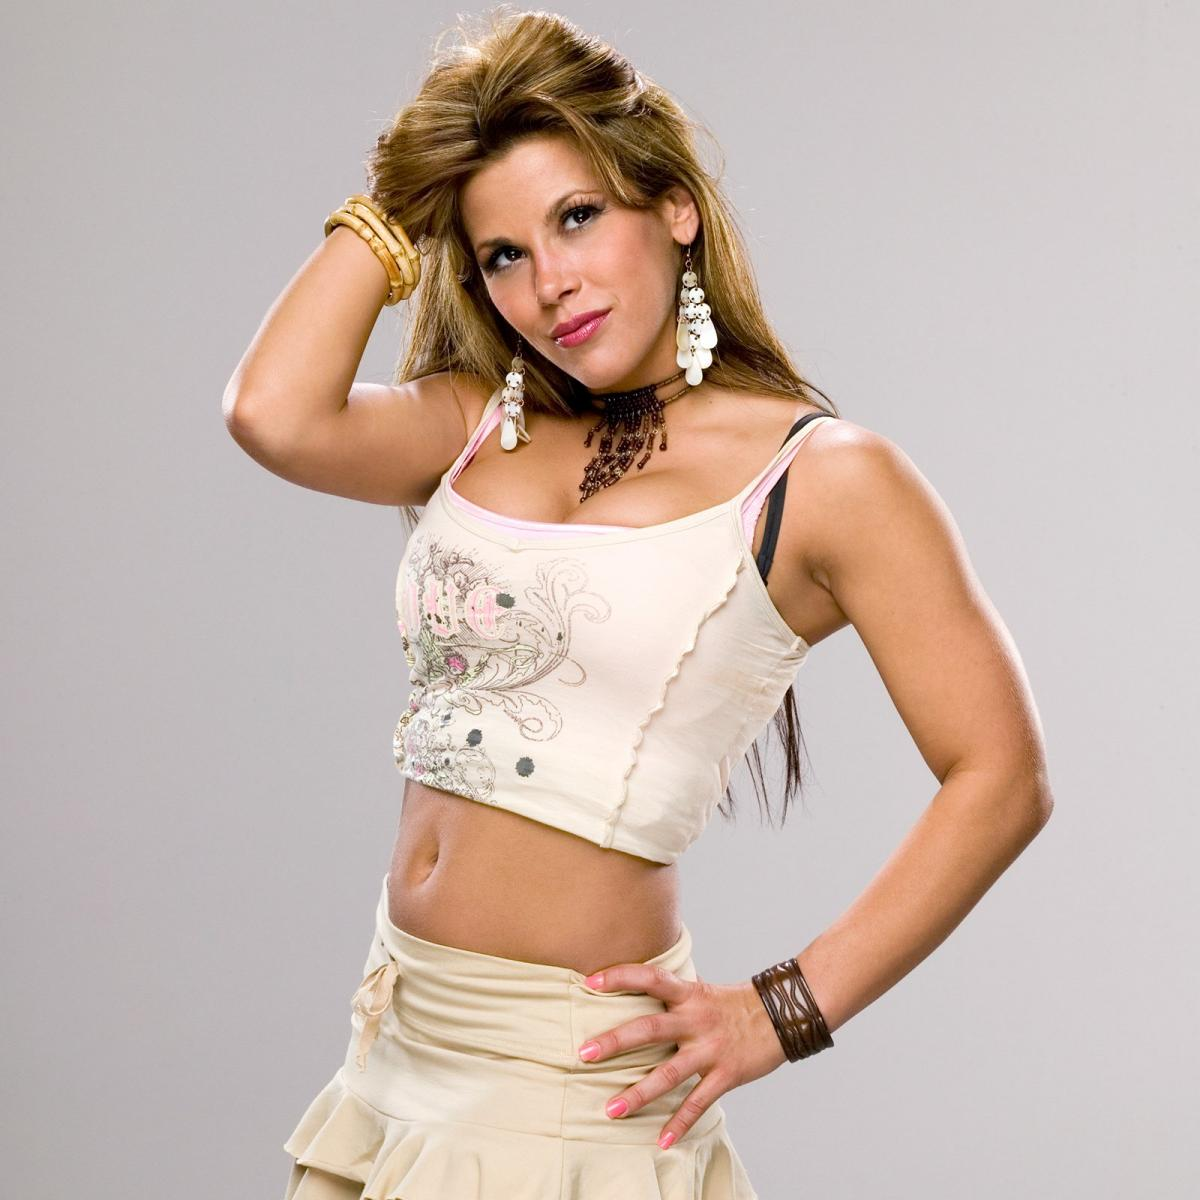 49 Sexy Mickie James Boobs Pictures Are Just Too Damn Sexy